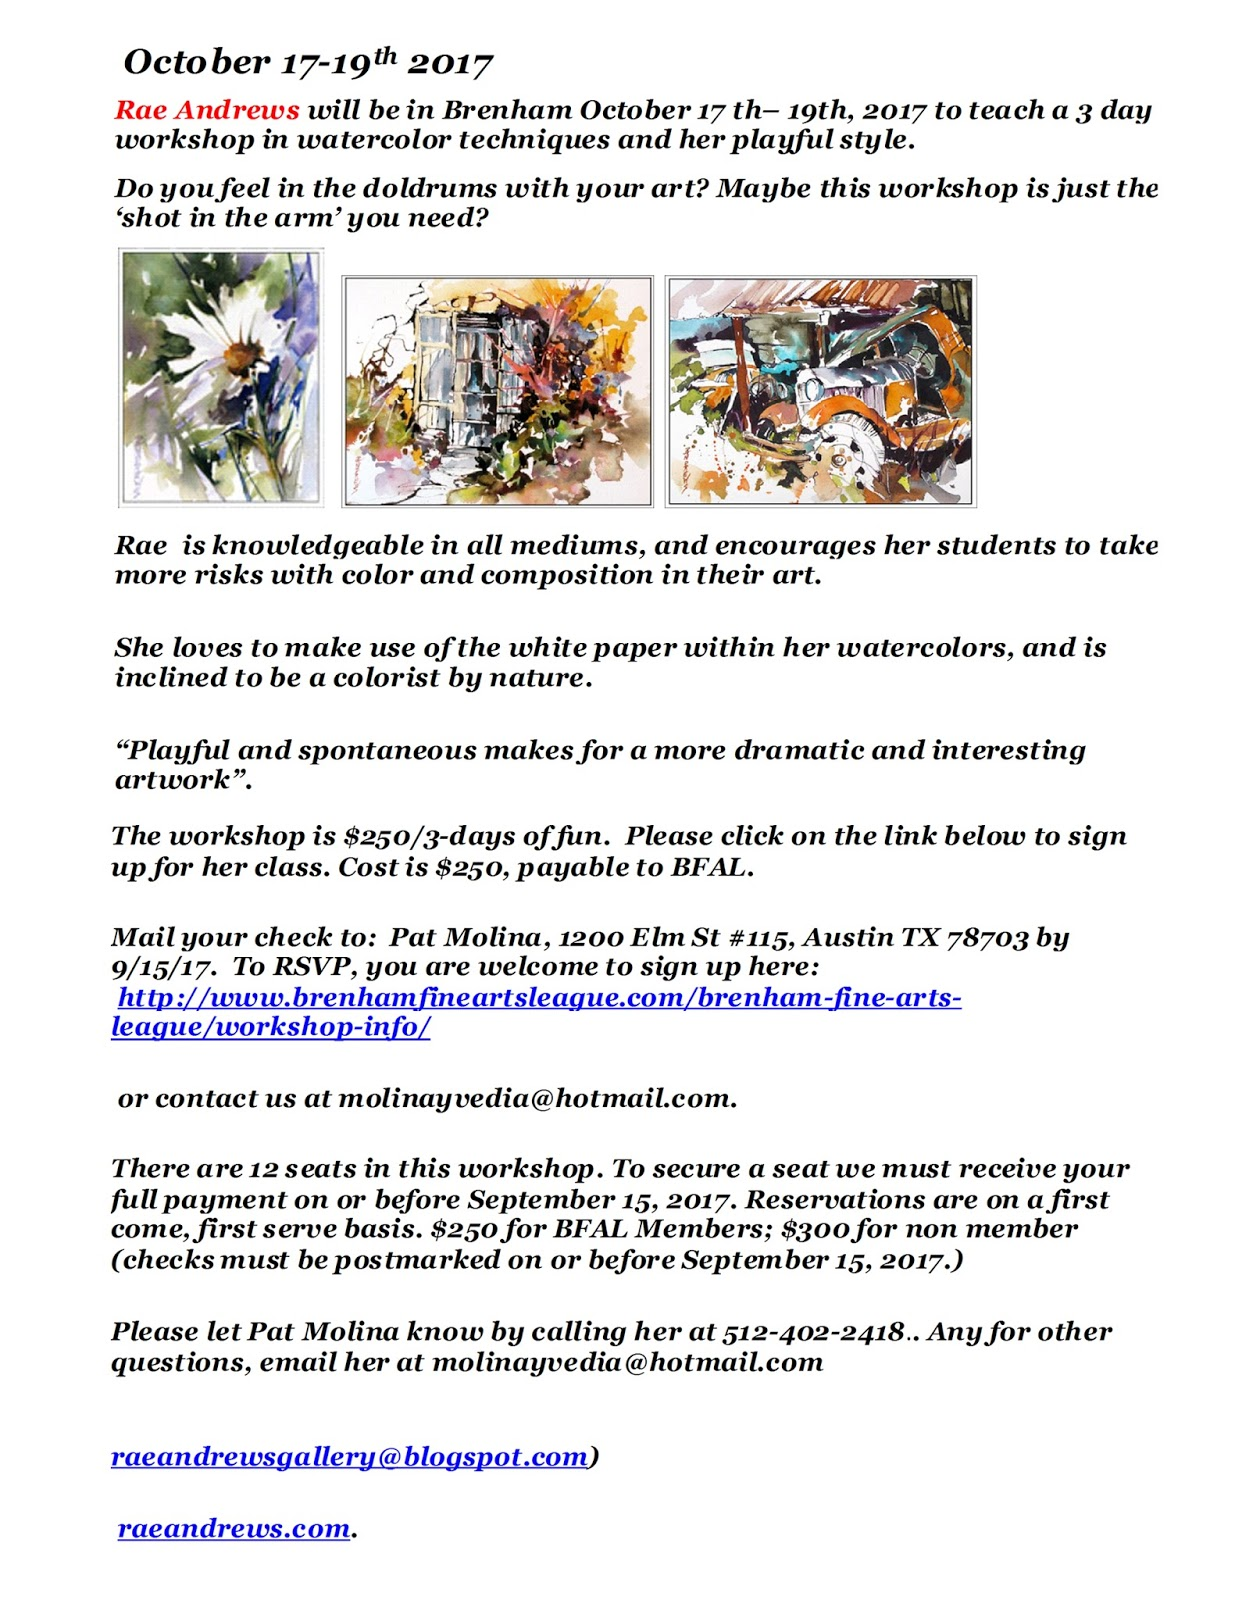 Watercolor artists in texas - Come Pasint With Rae Andrews In Brenham Texas